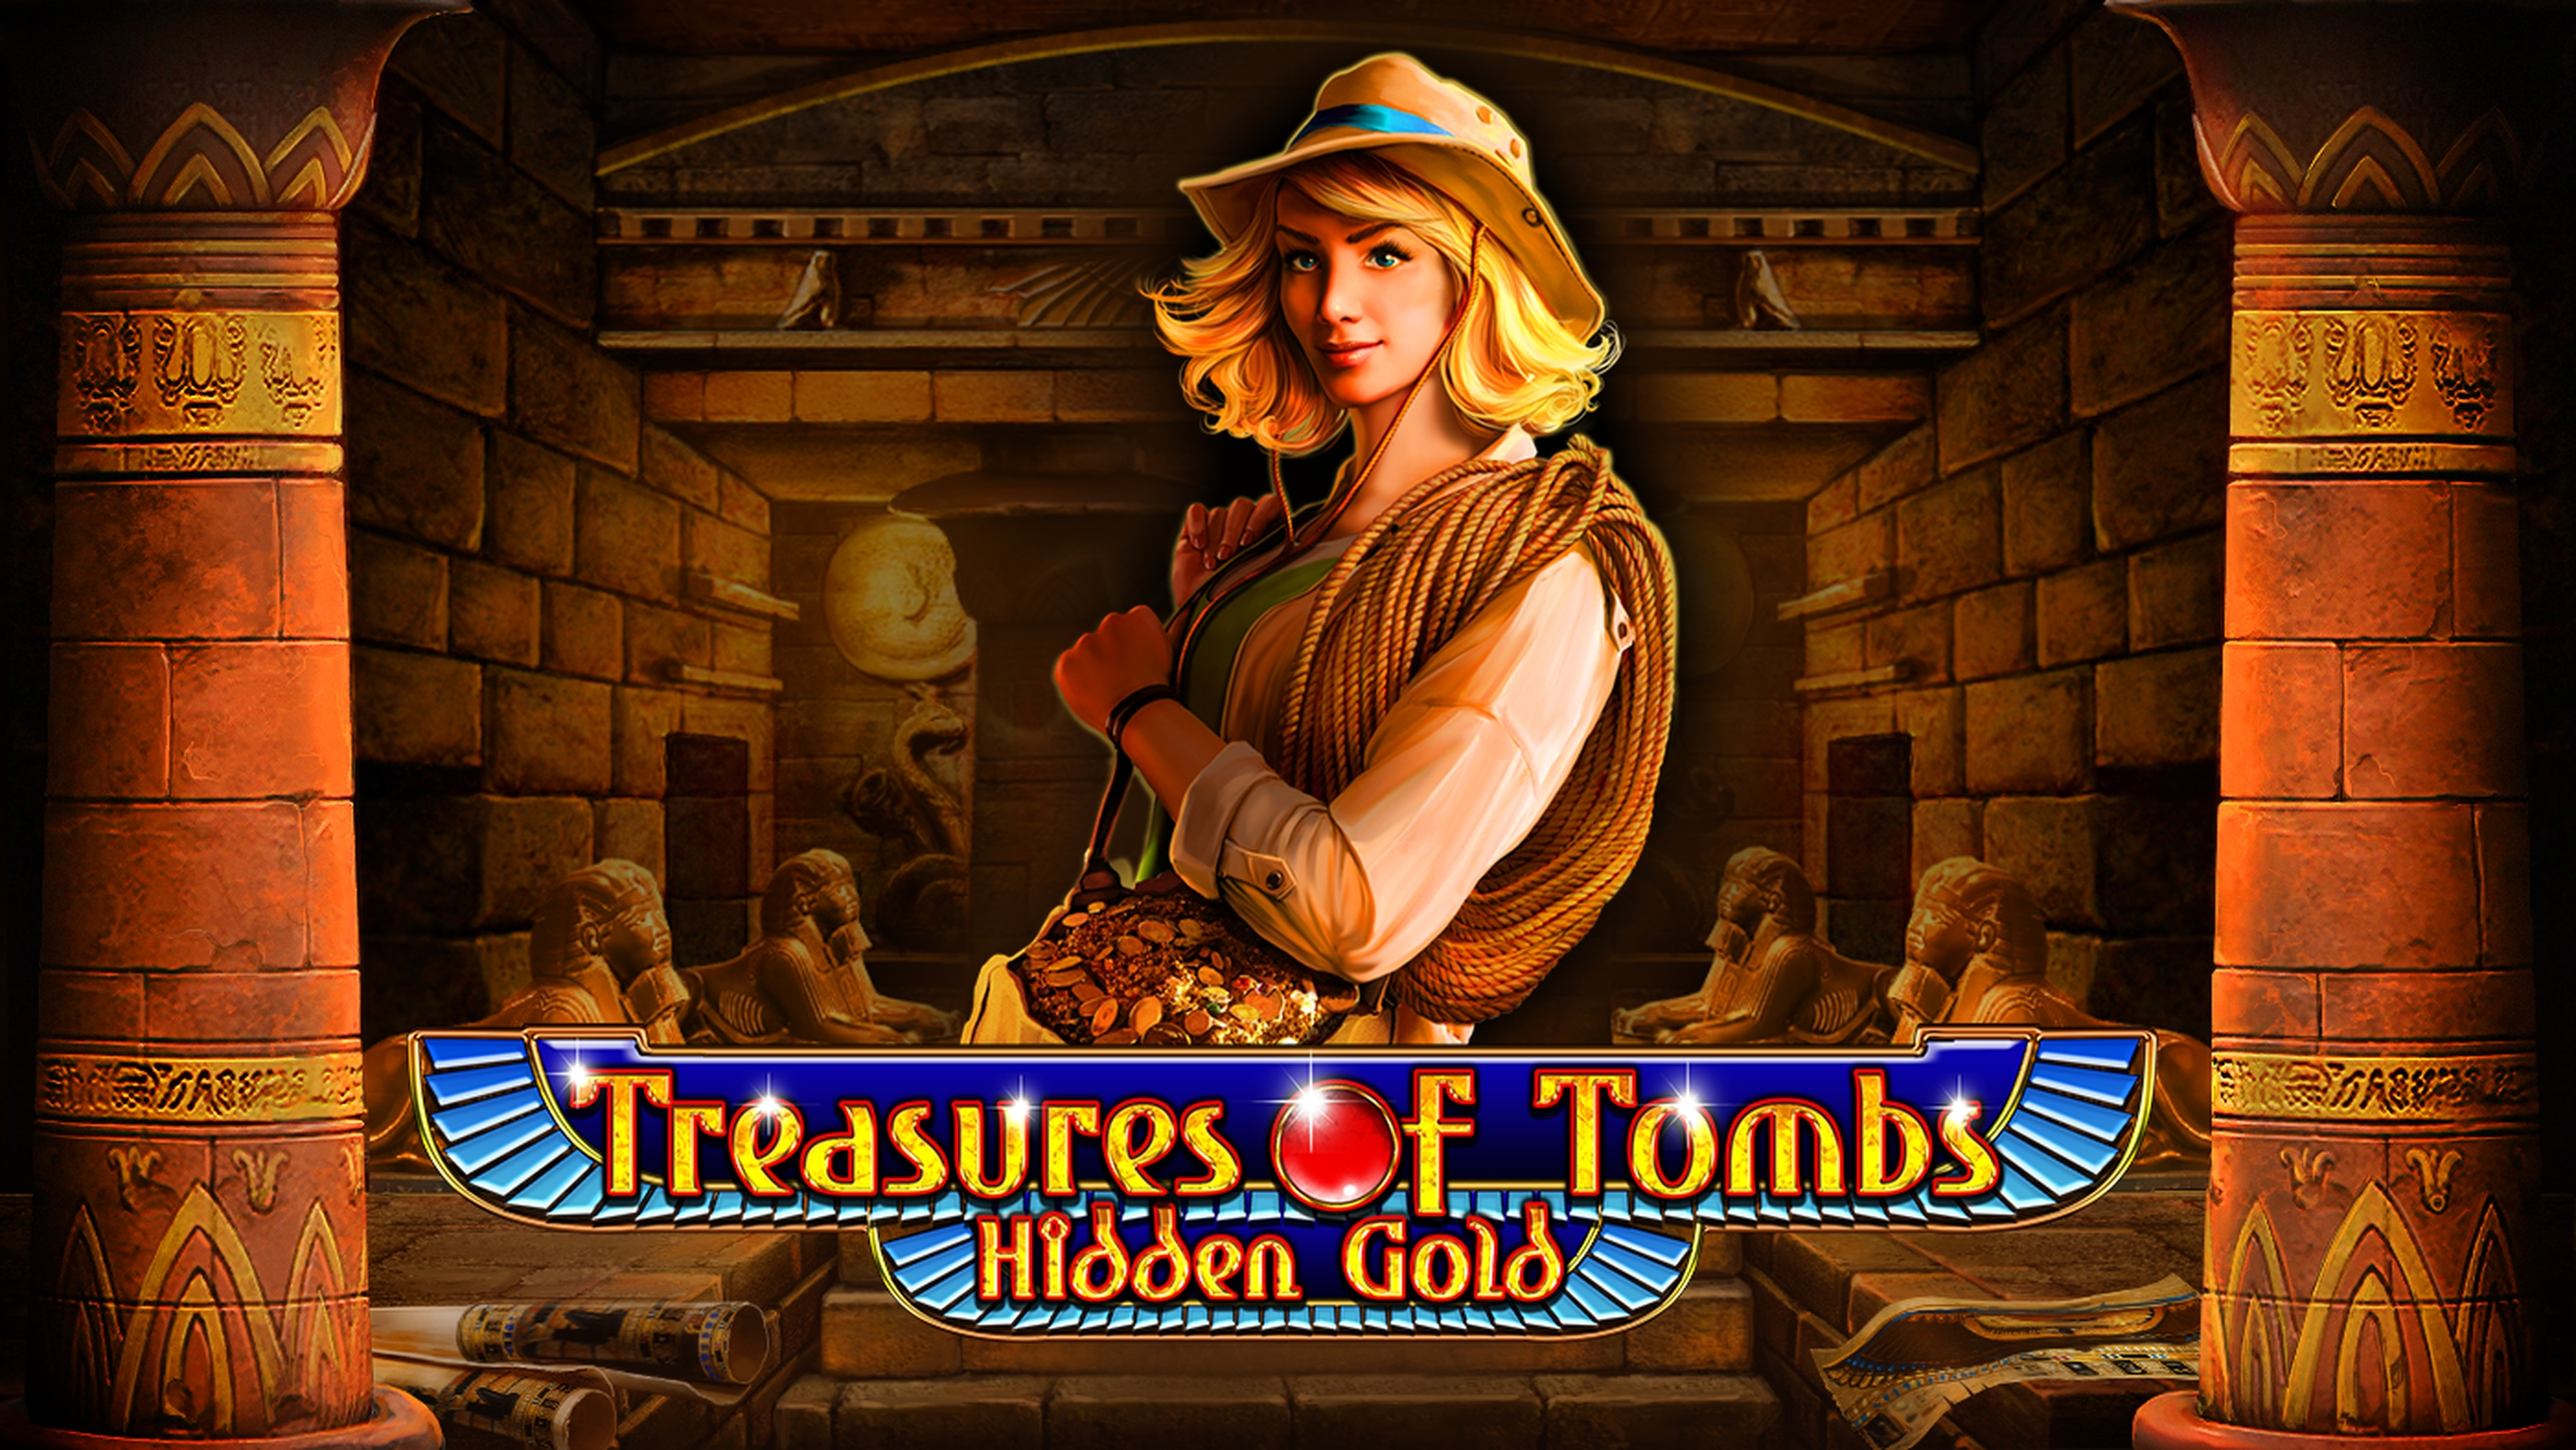 The Treasures of Tombs Hidden Gold Online Slot Demo Game by Playson